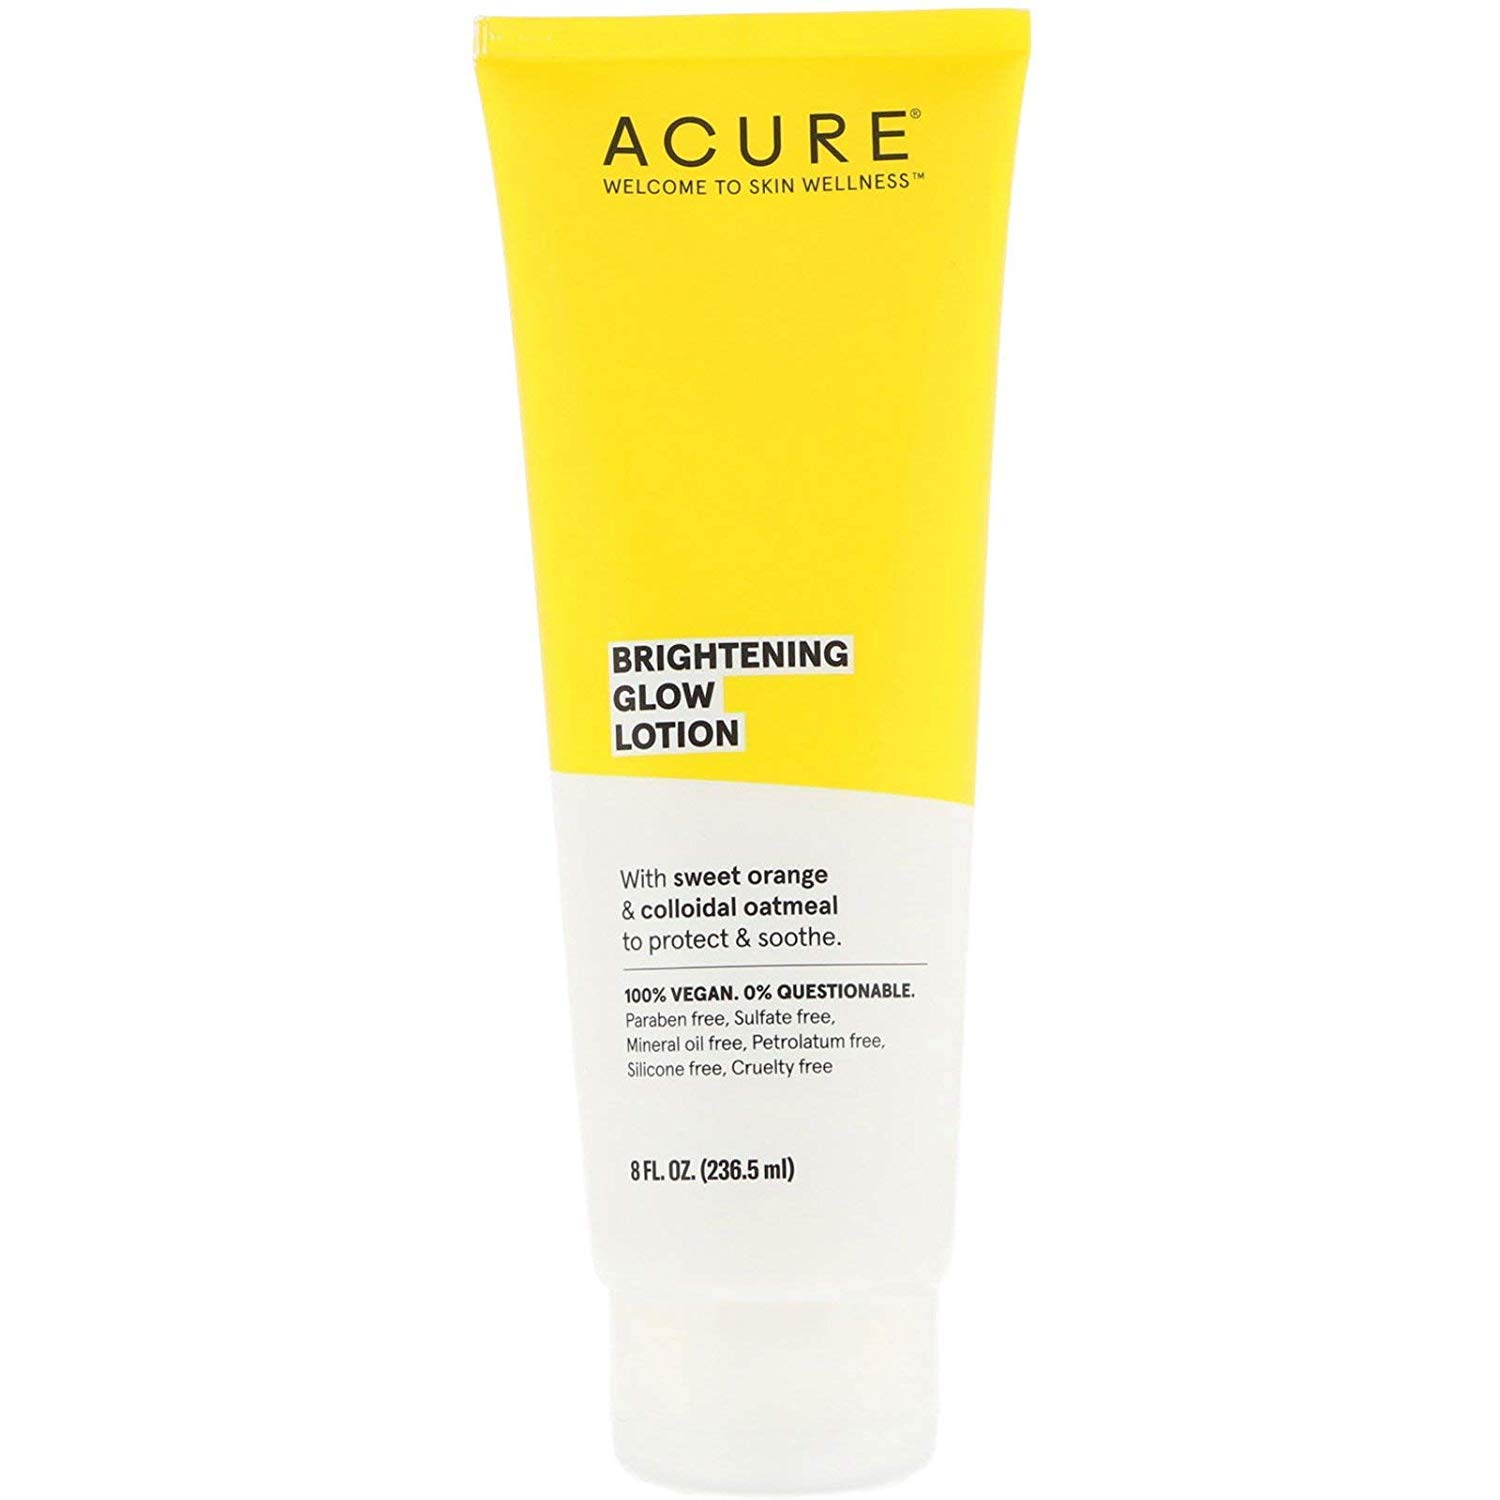 Acure Welcome To Skin Wellness Lotion Brightening Glow 9